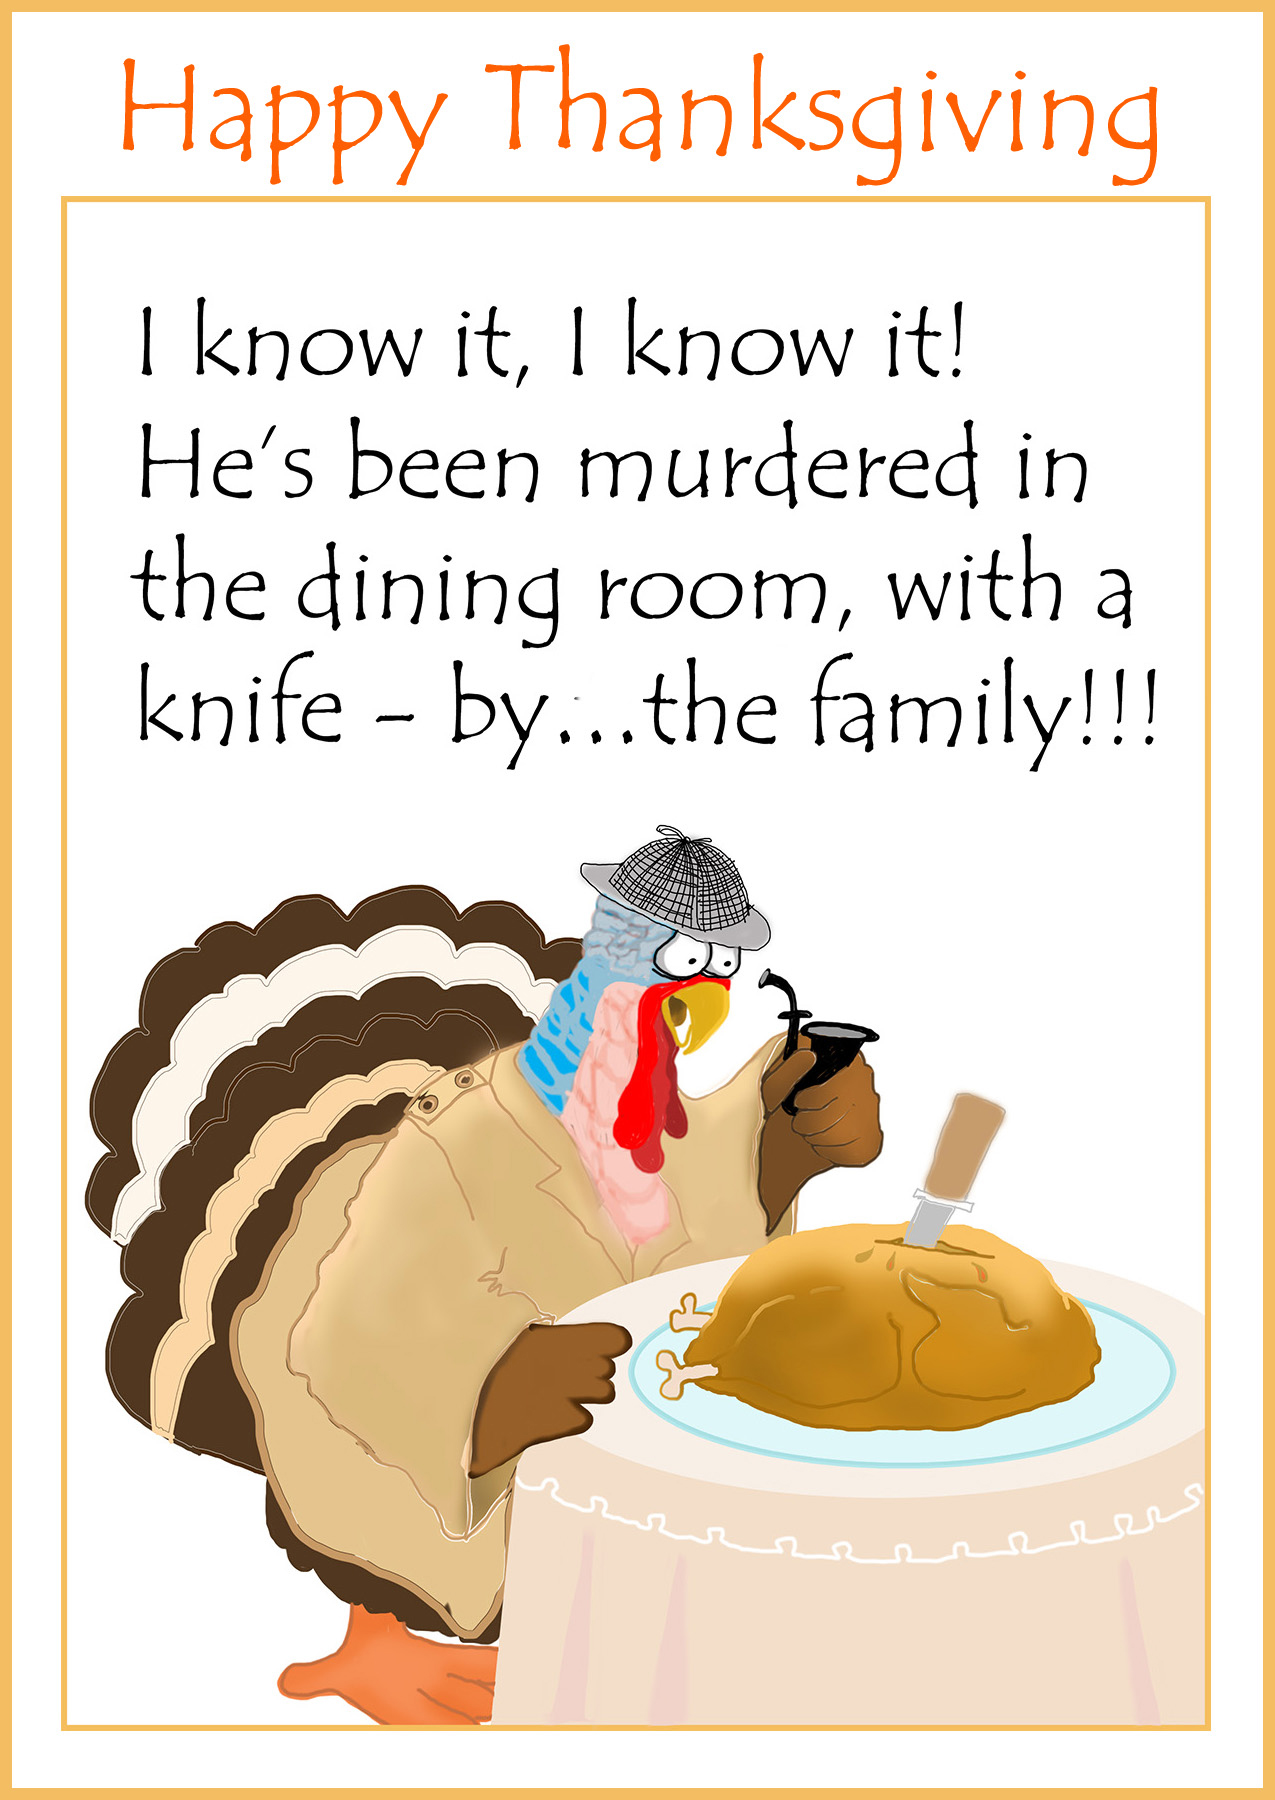 Happy thanksgiving cards and thanksgiving poems funny thanksgiving card with cluedo motif kristyandbryce Choice Image